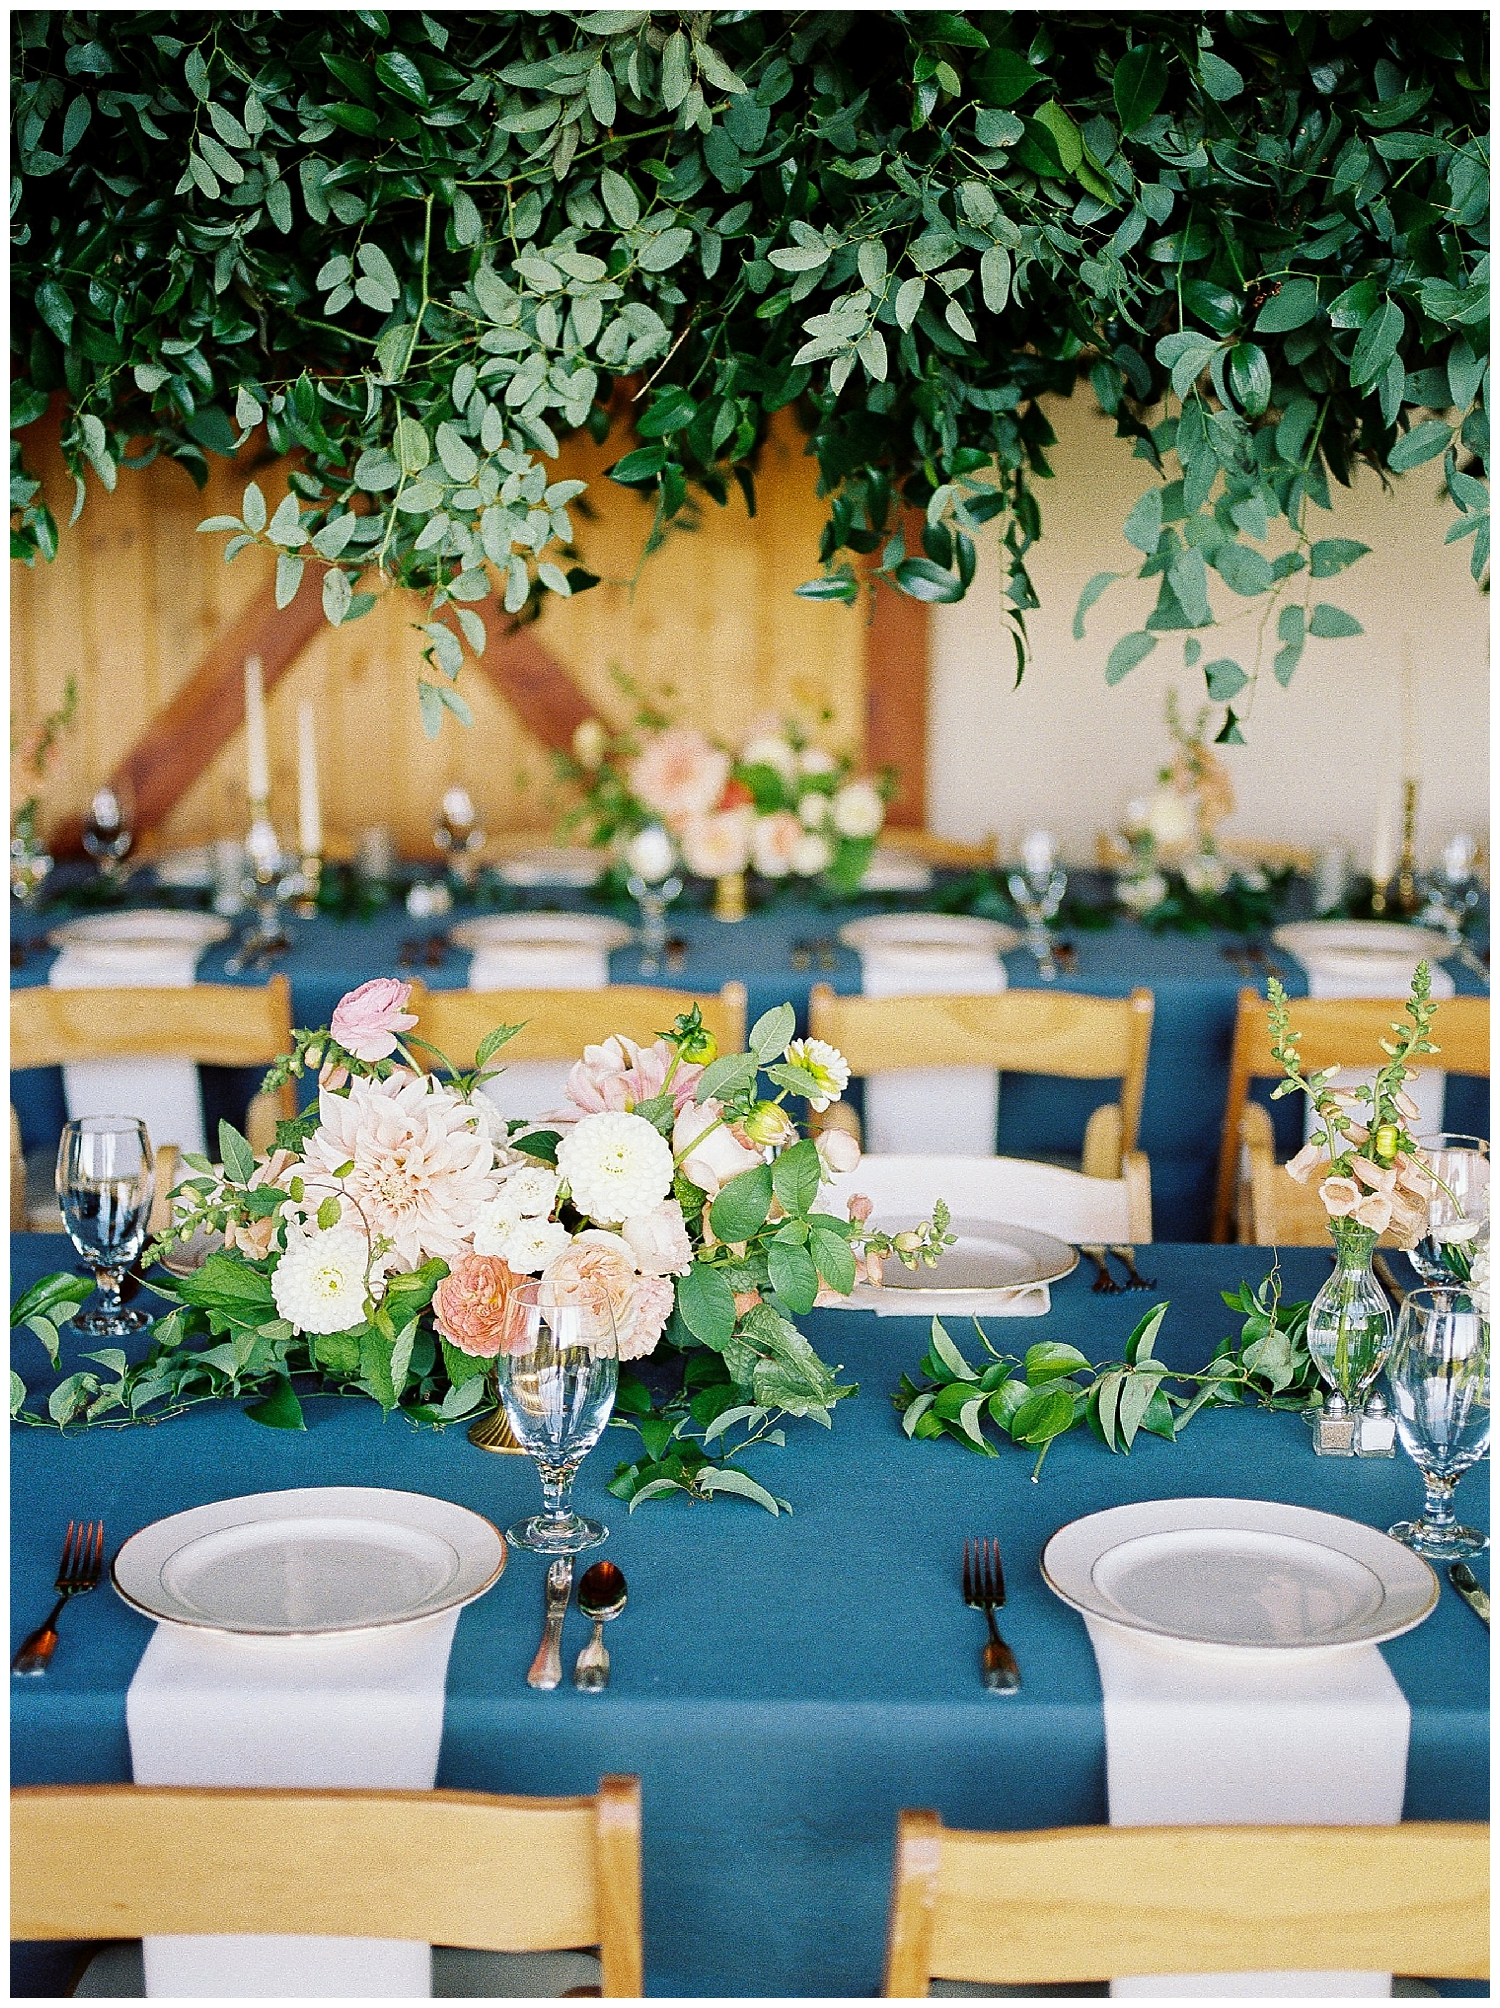 Best_Portland_Wedding_Florist_and_Design6.jpg